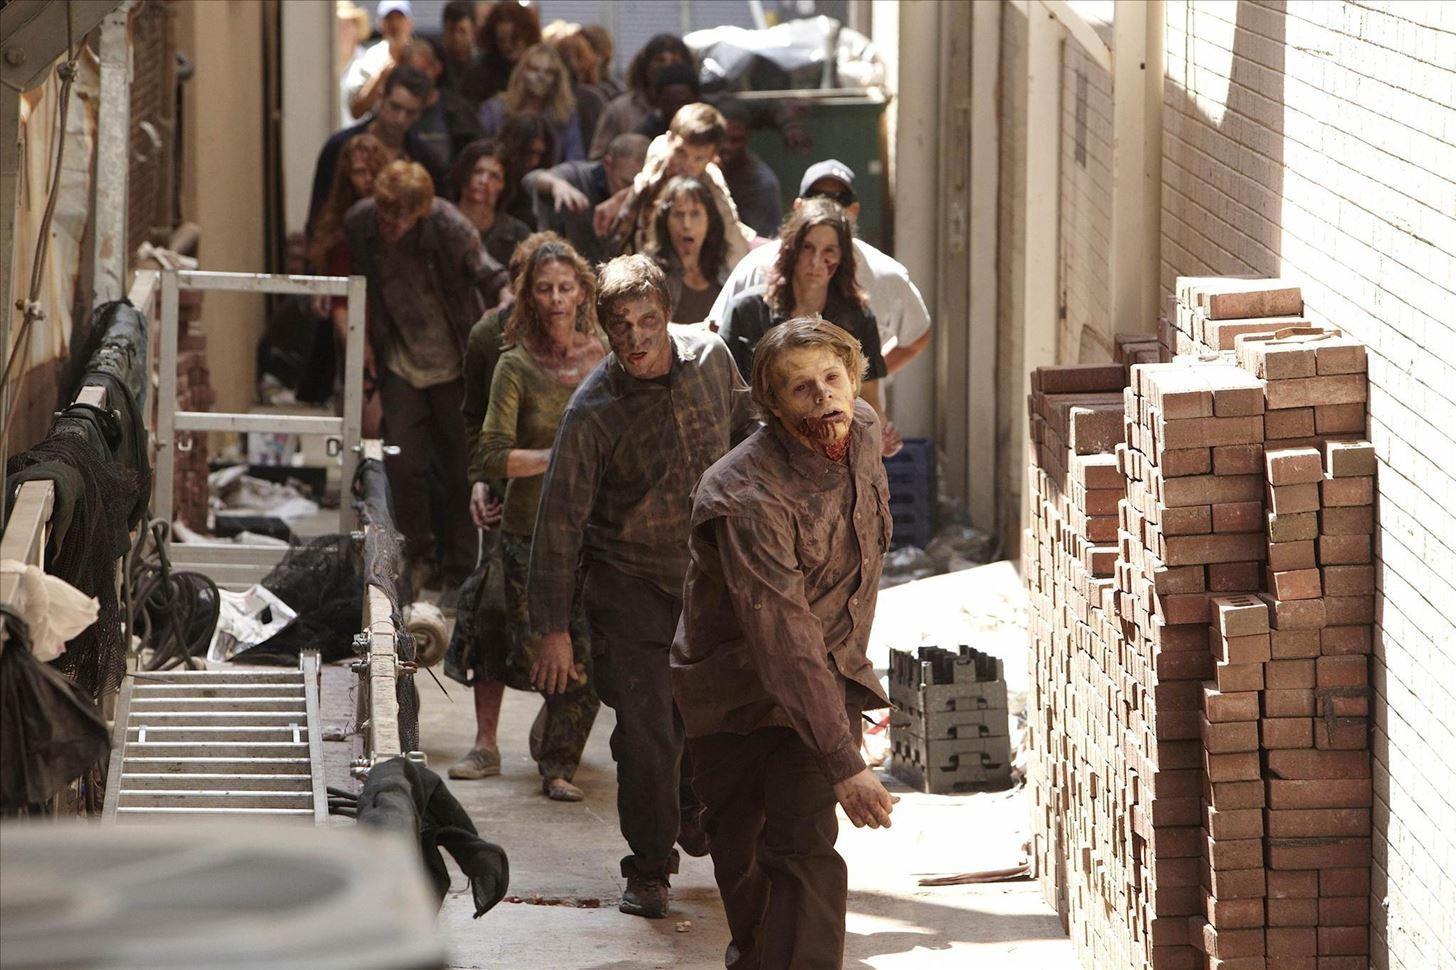 The End of the World Survival Guide: Staying Alive During the Zombie Apocalypse